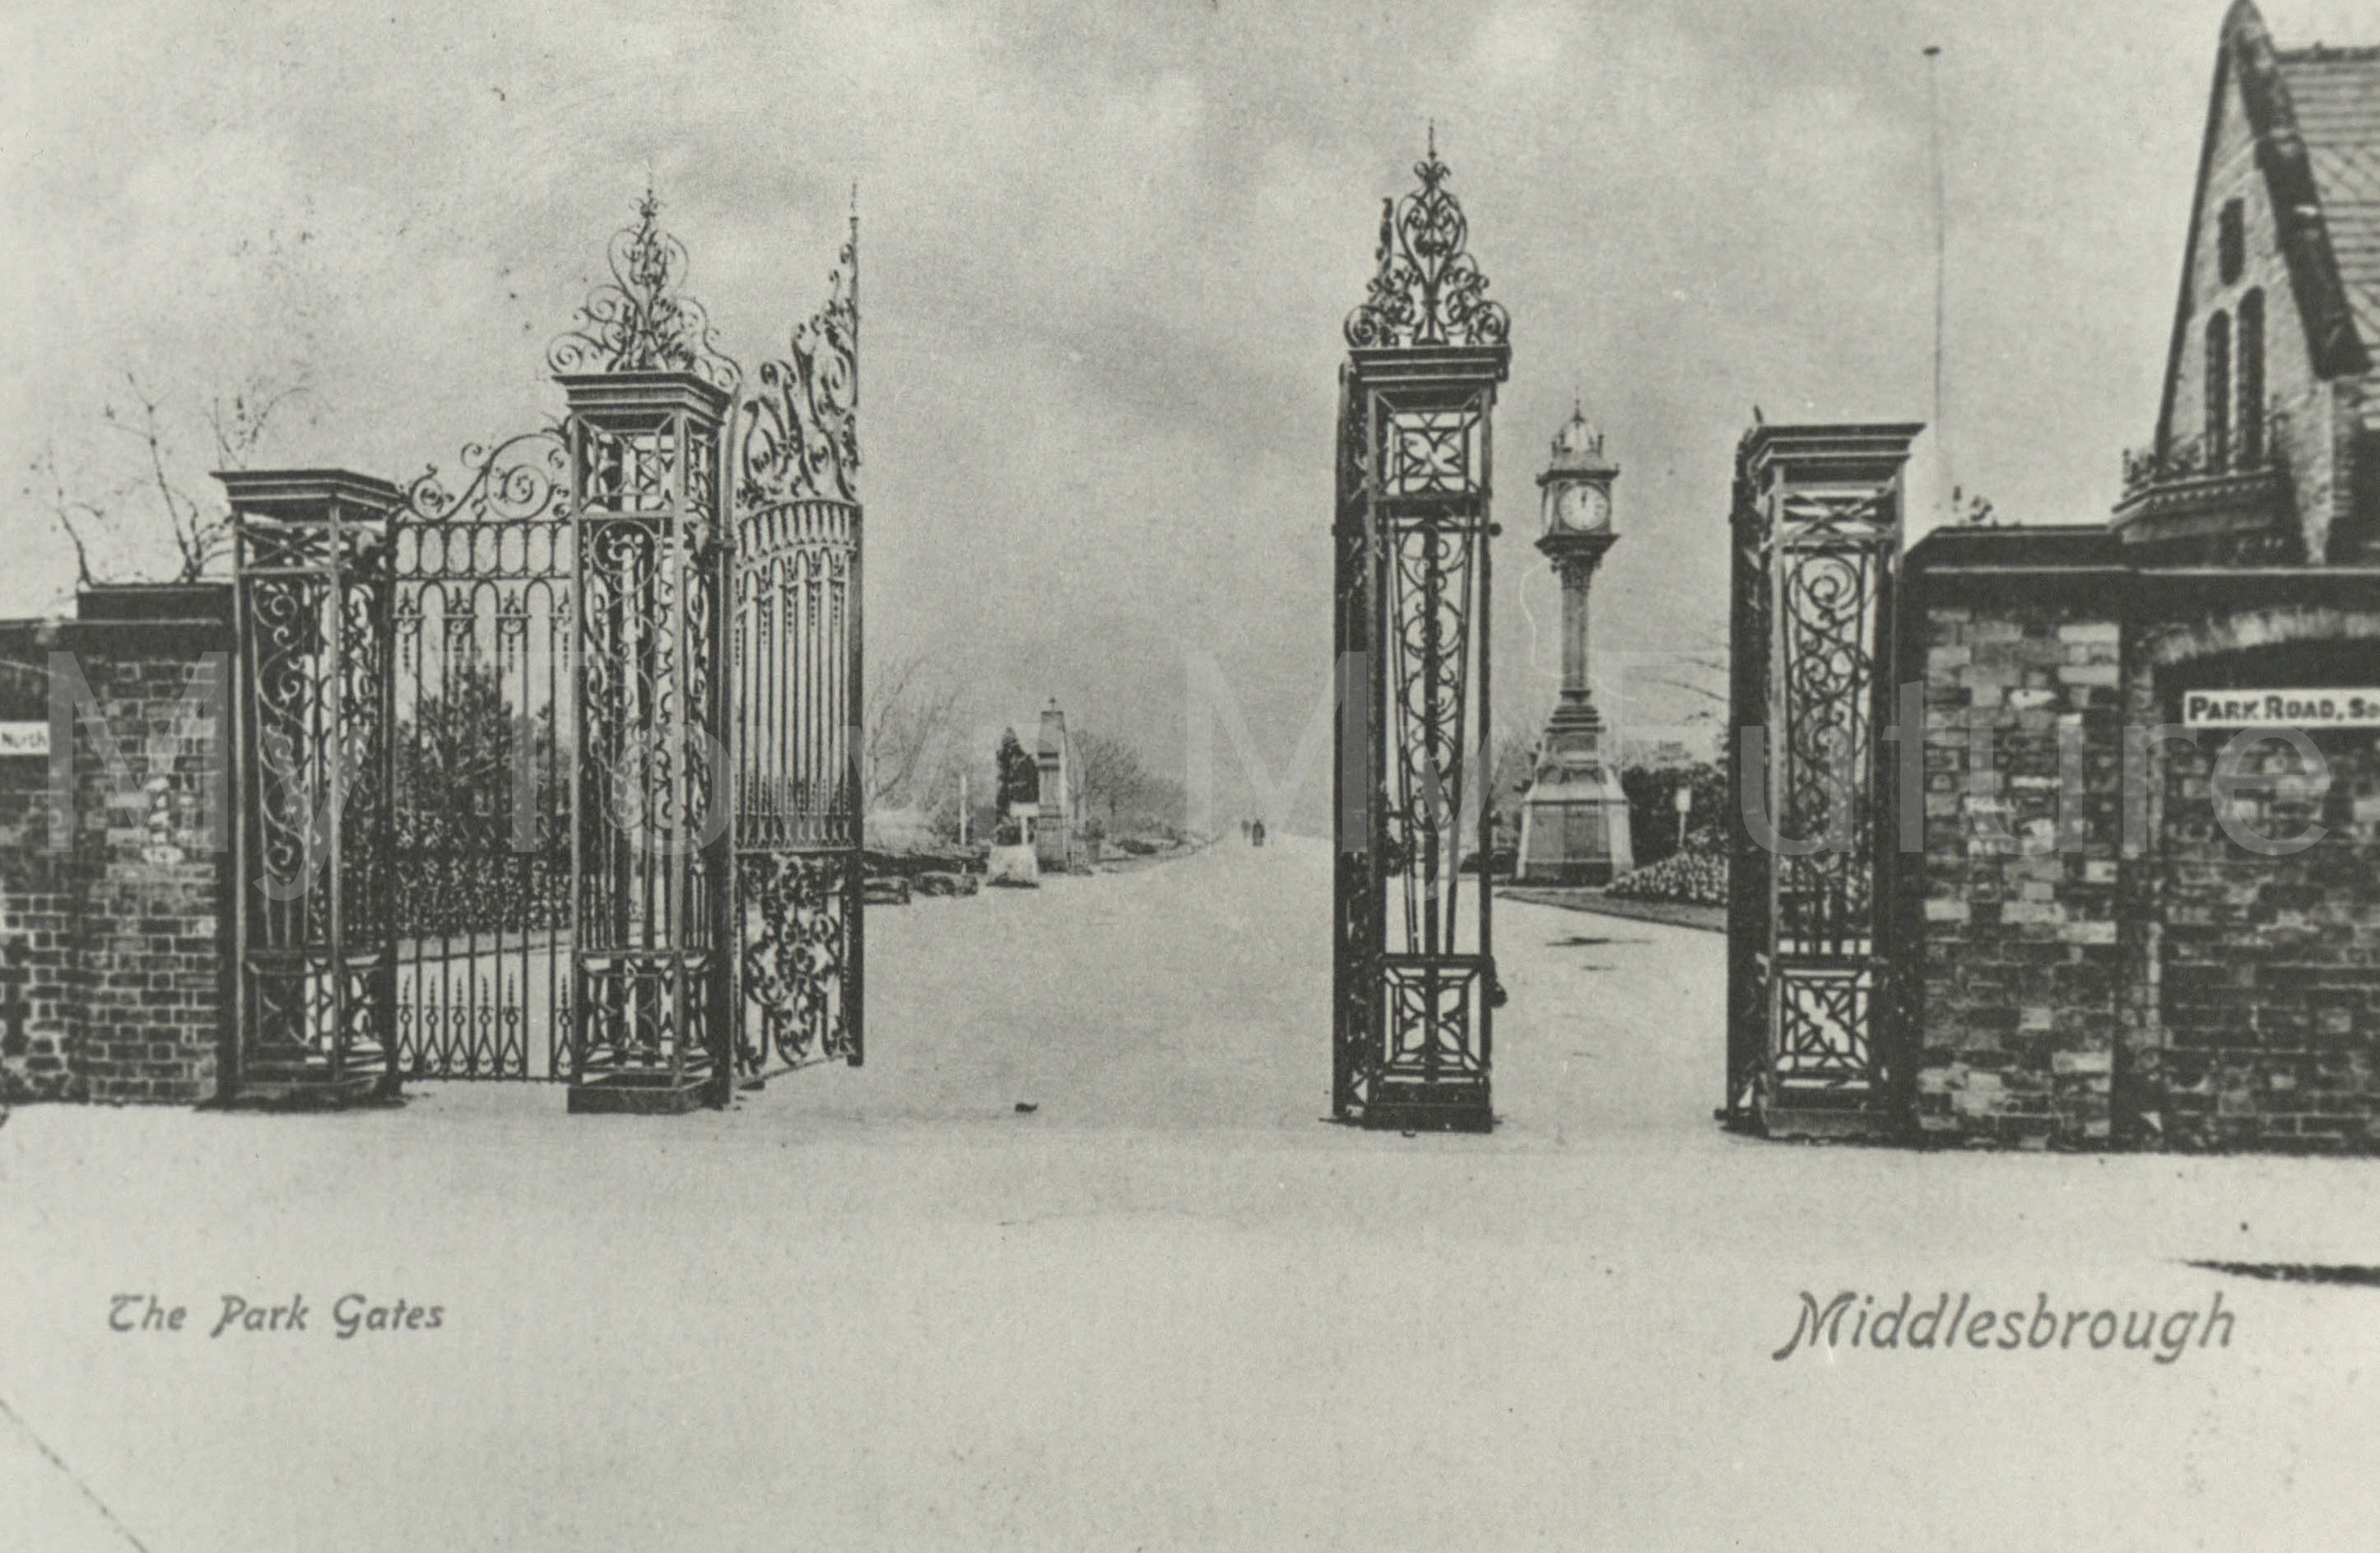 Albert Park - Postcard of the park gates, Postmarked - 31st August 1903 - Mrs Hunter, Department of Planning - Cleveland County Council